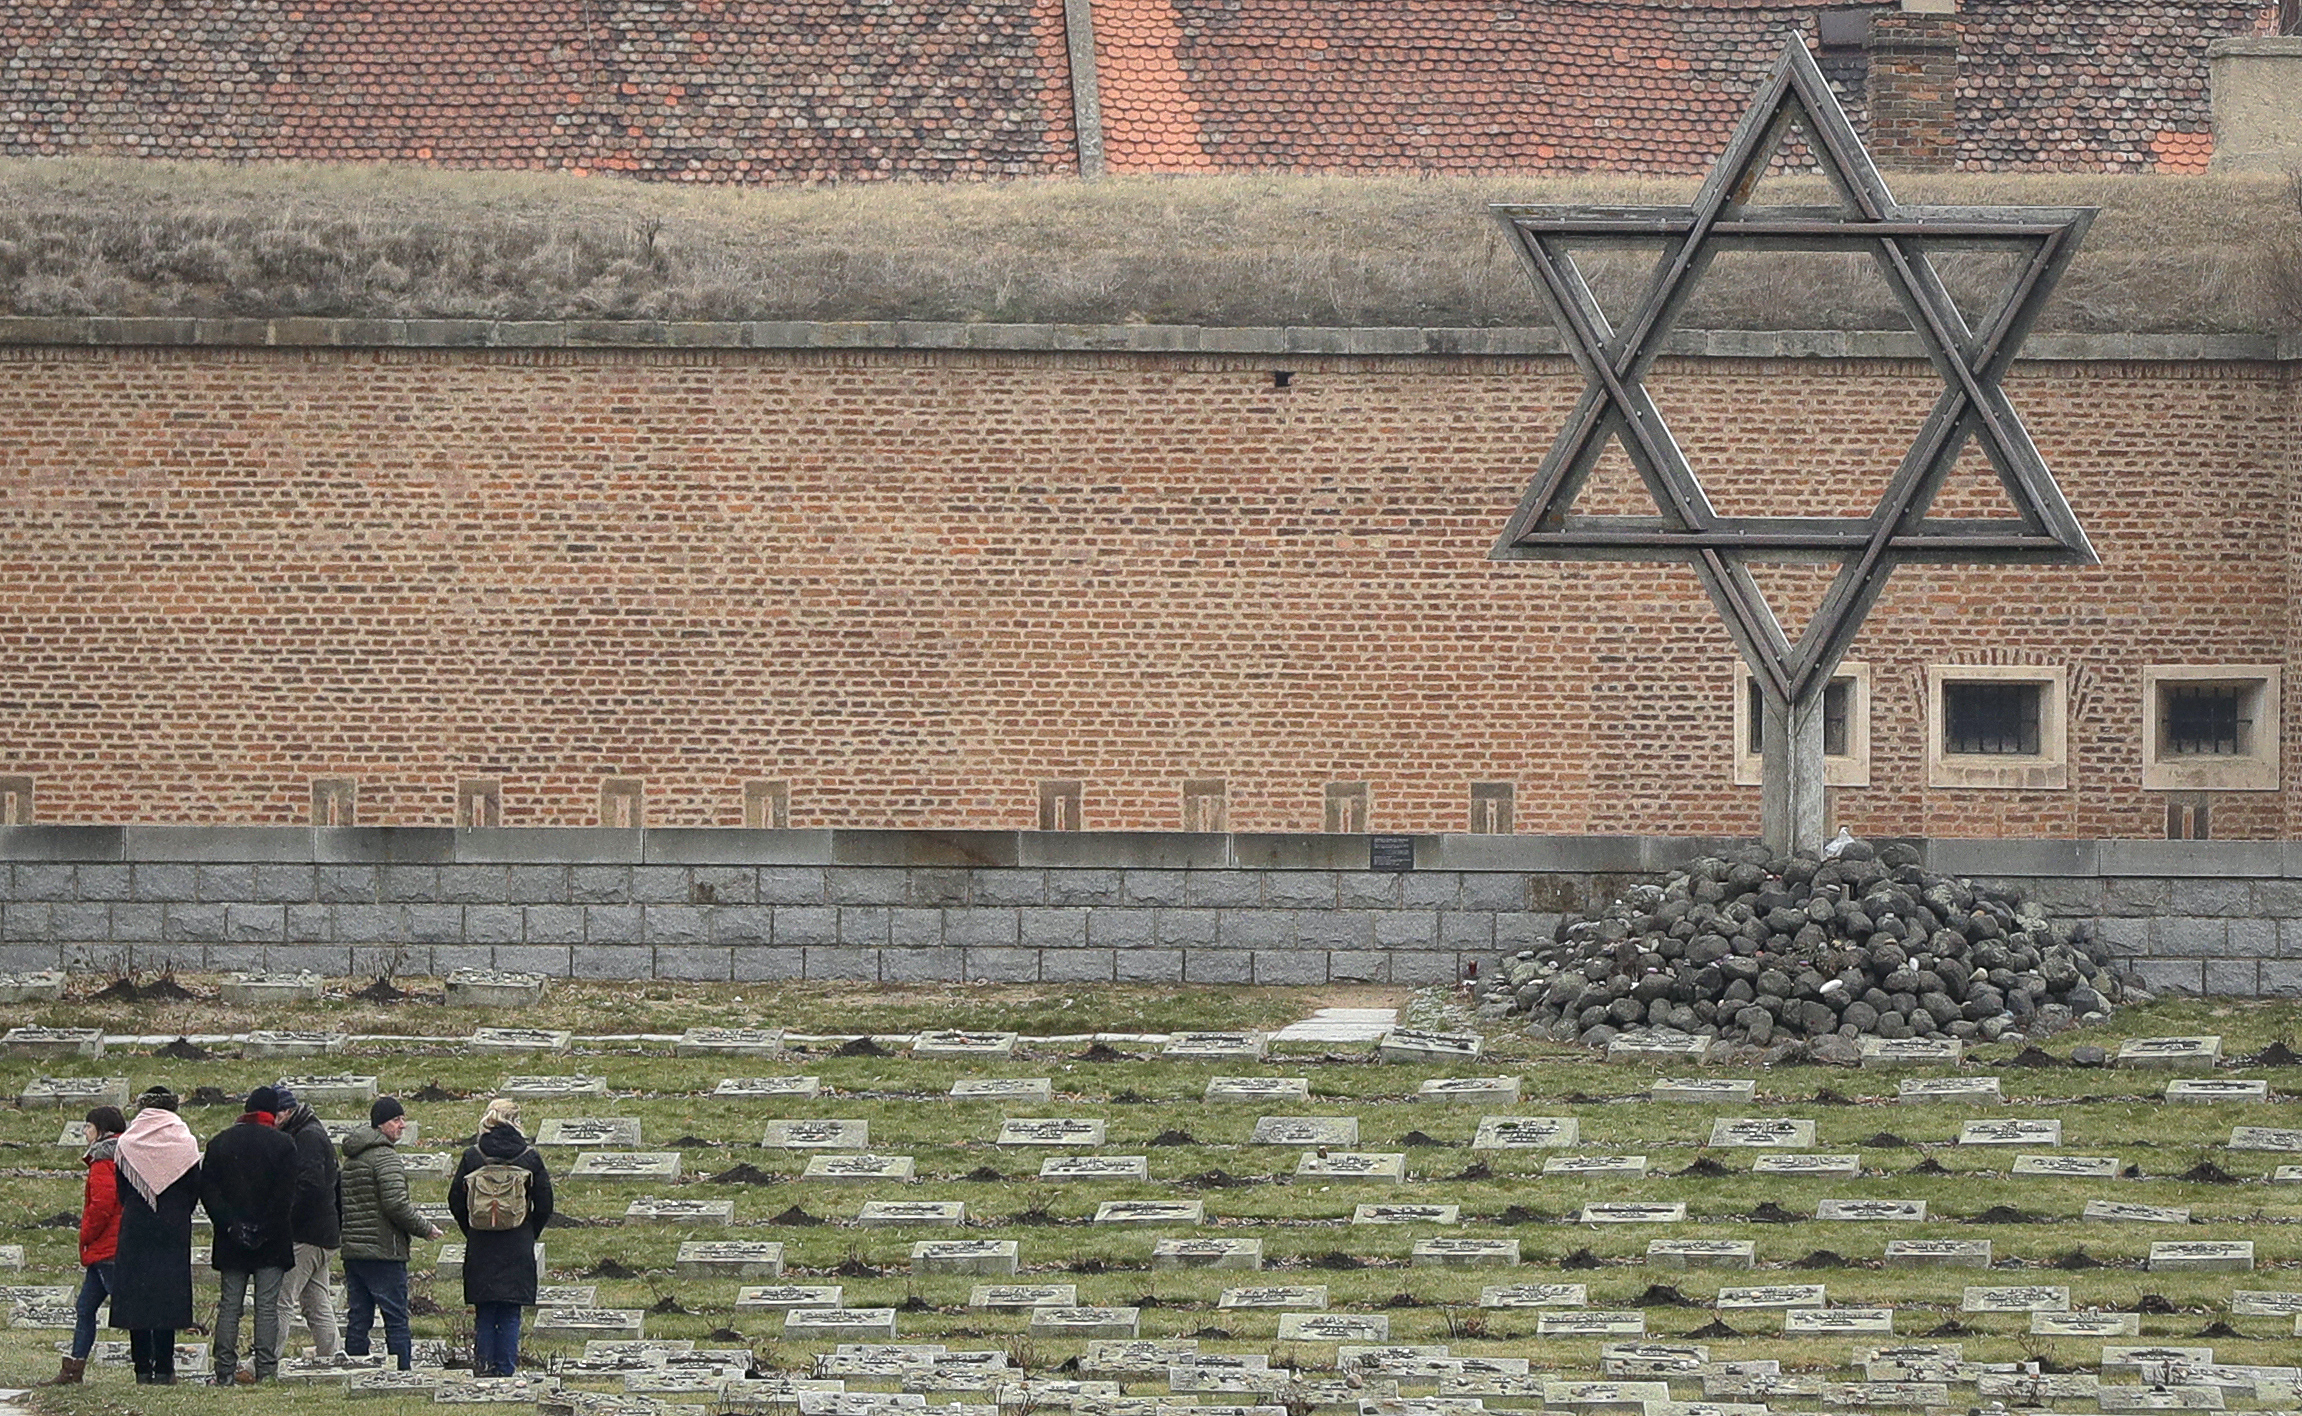 Czech_Republic_Holocaust_Photo_Gallery_33114-159532.jpg66945077